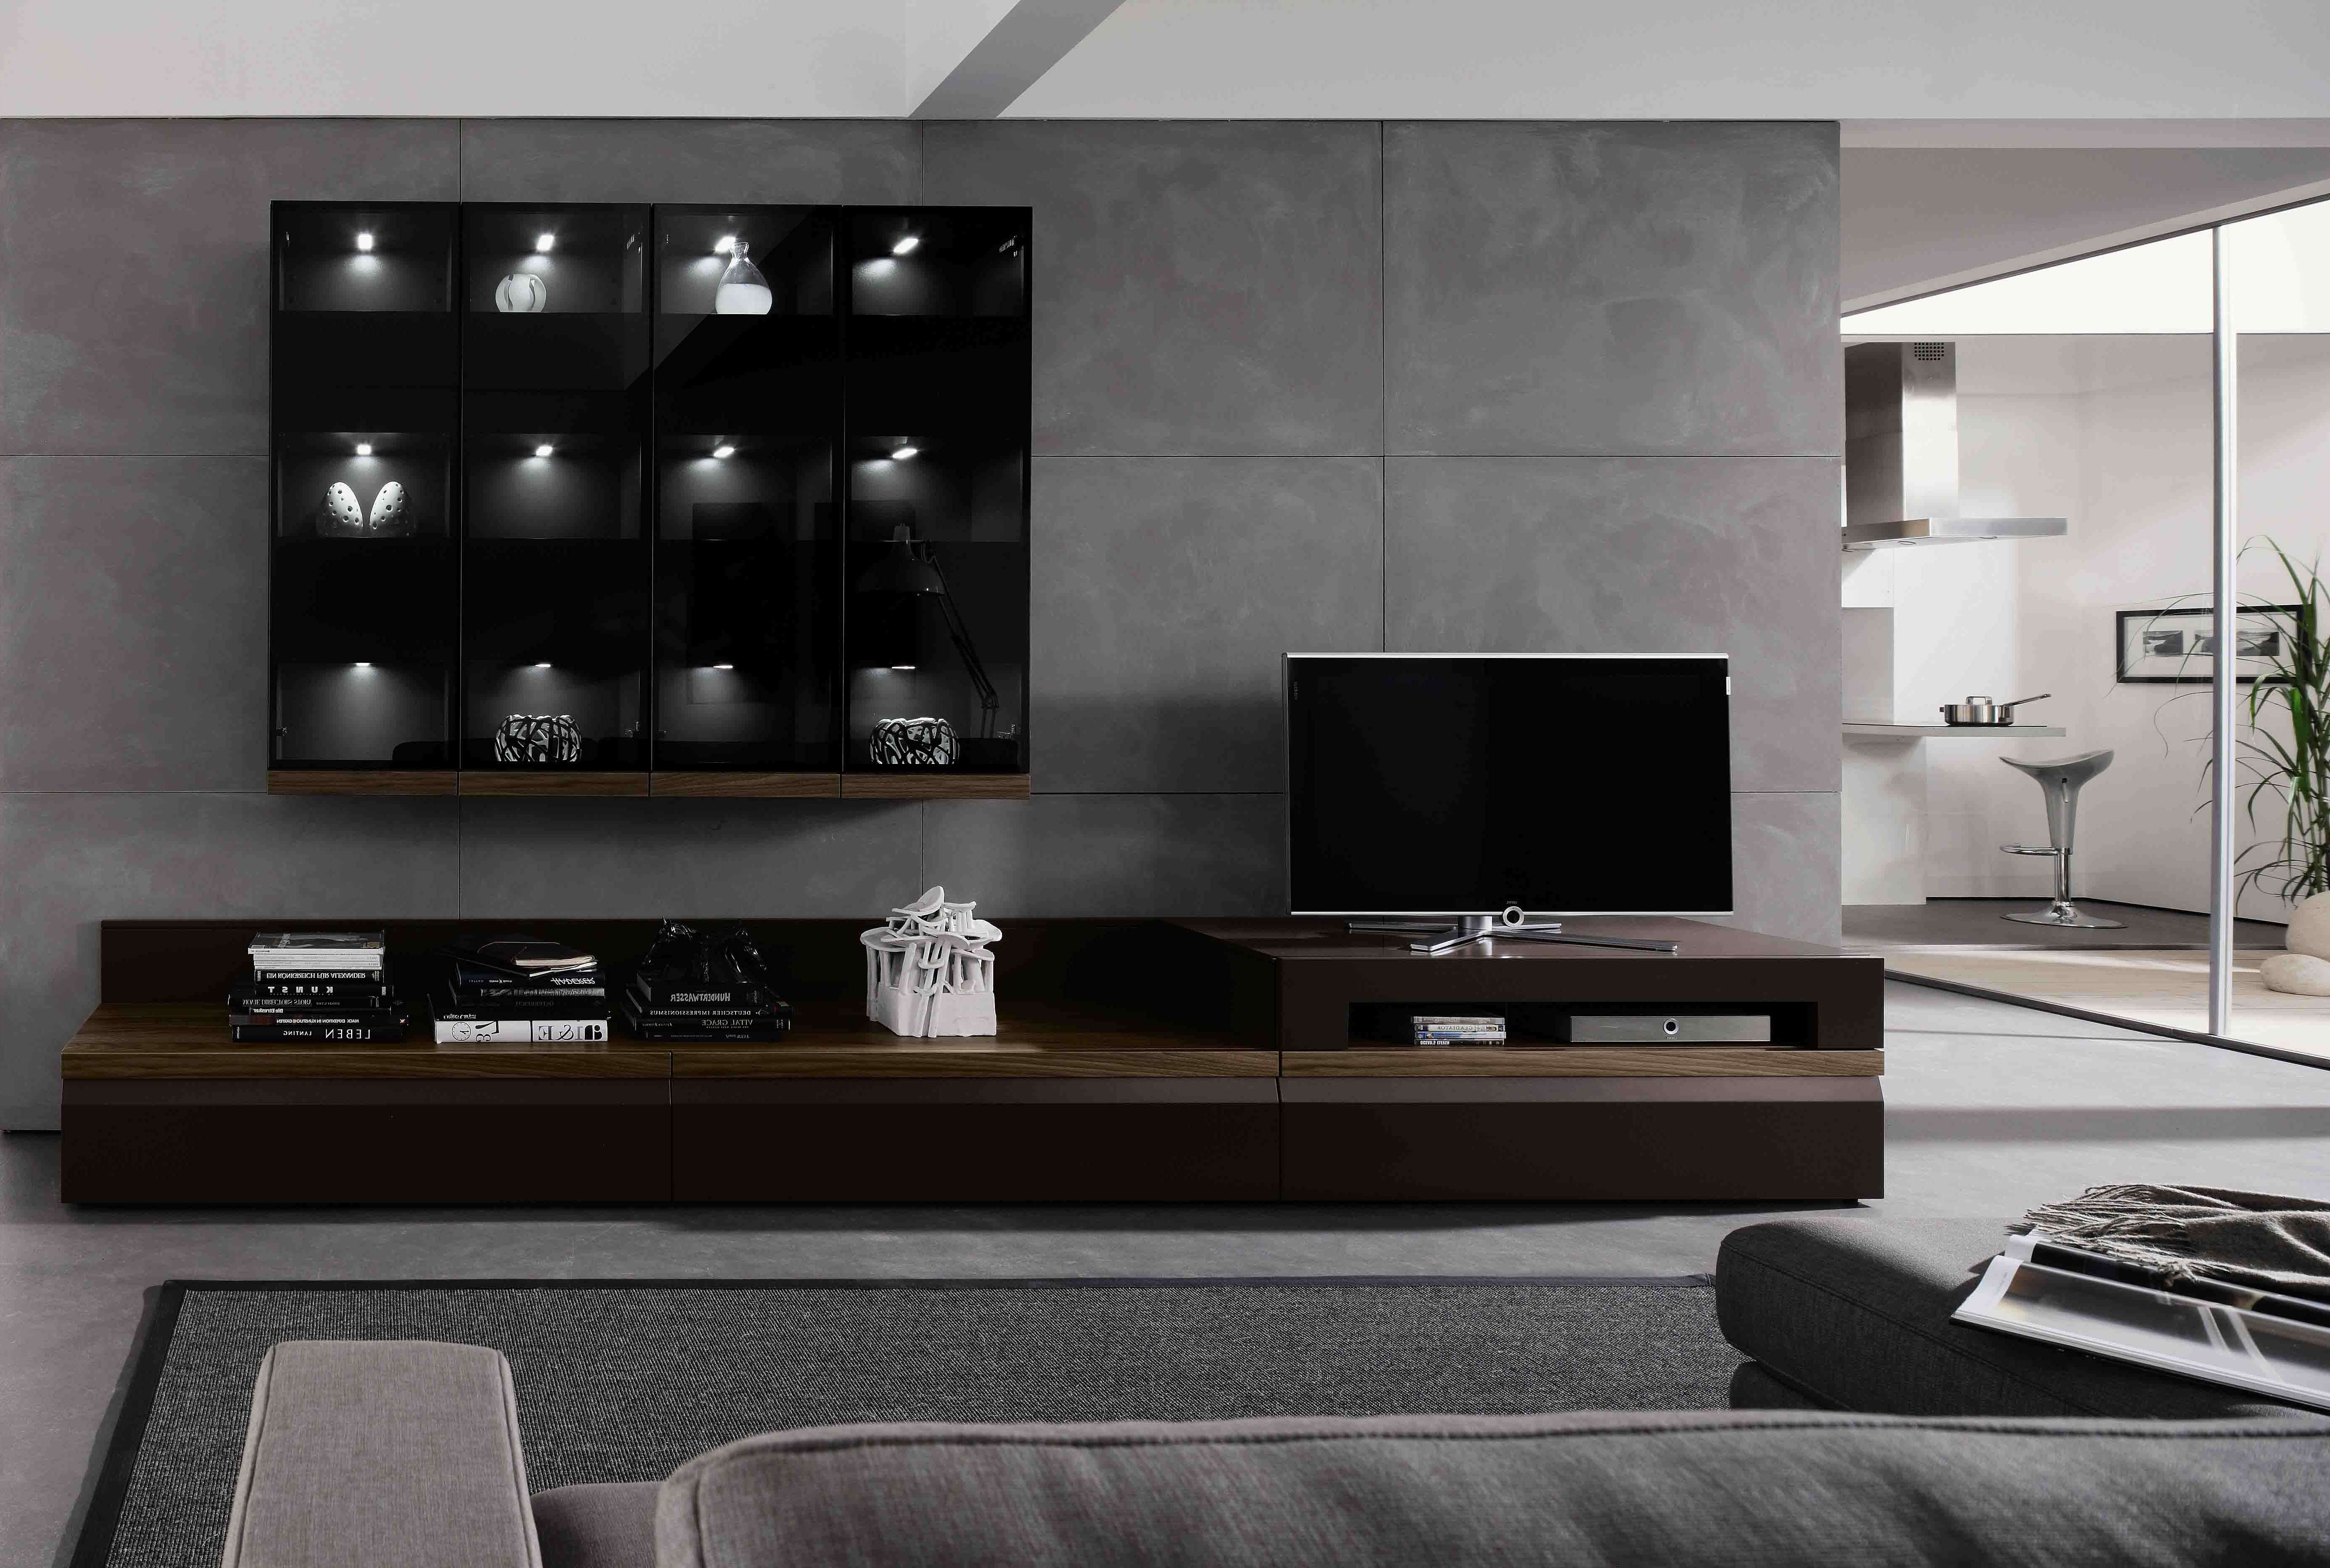 Wall Display Units Tv Cabinets 46 With Wall Display Units Tv Inside Wall Display Units And Tv Cabinets (View 7 of 20)